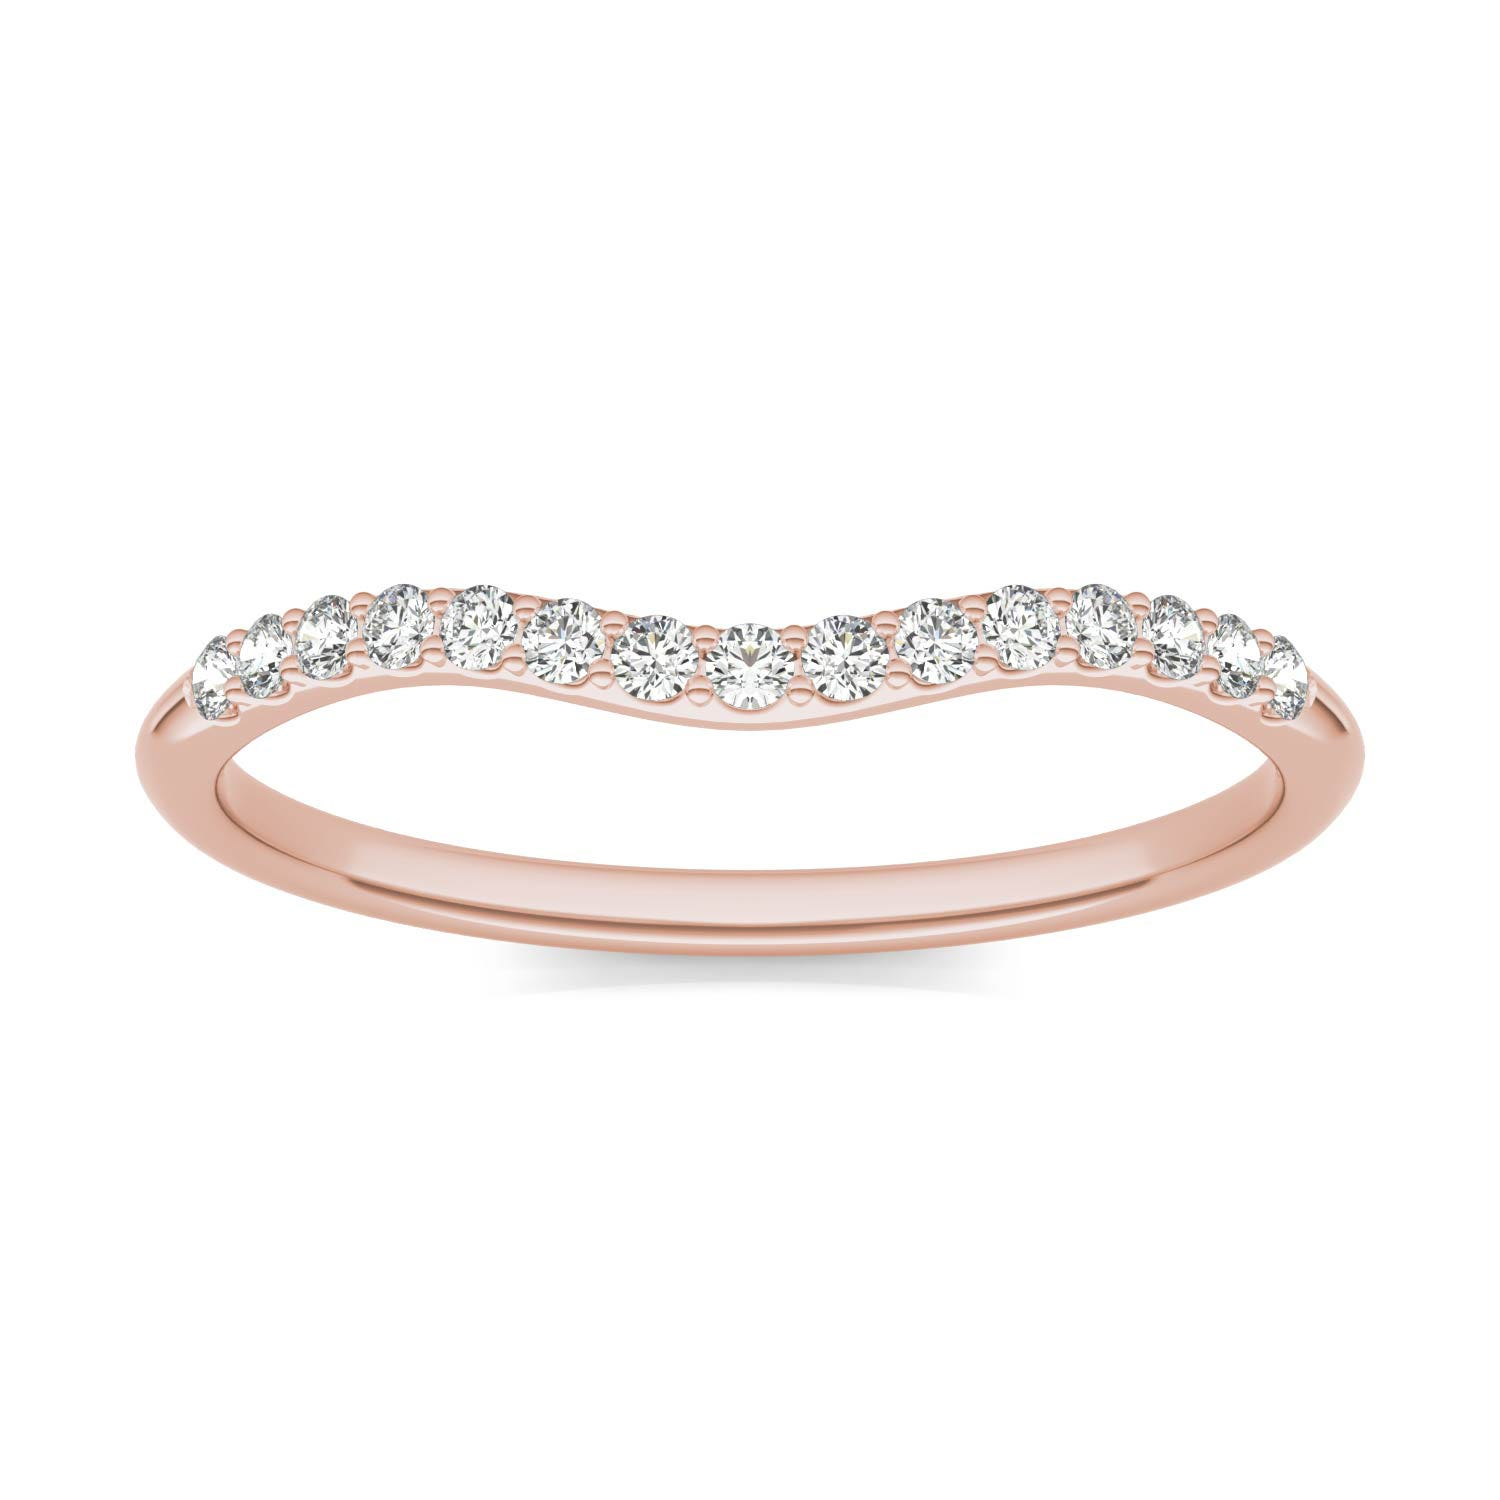 Signature 8mm Round Halo Matching Band Wedding Ring in 18K Rose Gold, 1/6 CTW Charles & Colvard